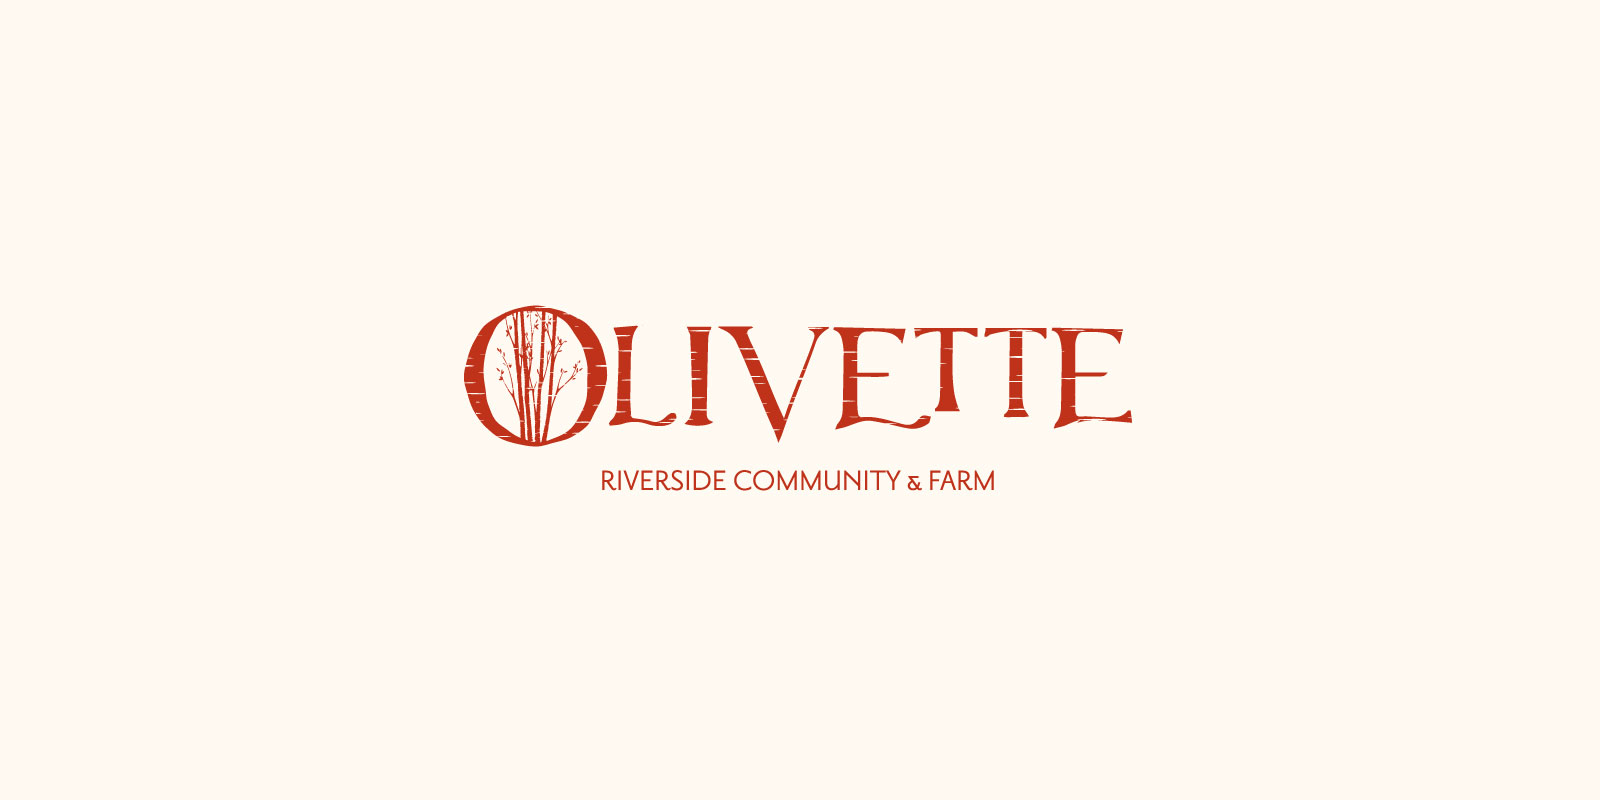 Olivette Riverside Community and Farm logo in red against and off-white background